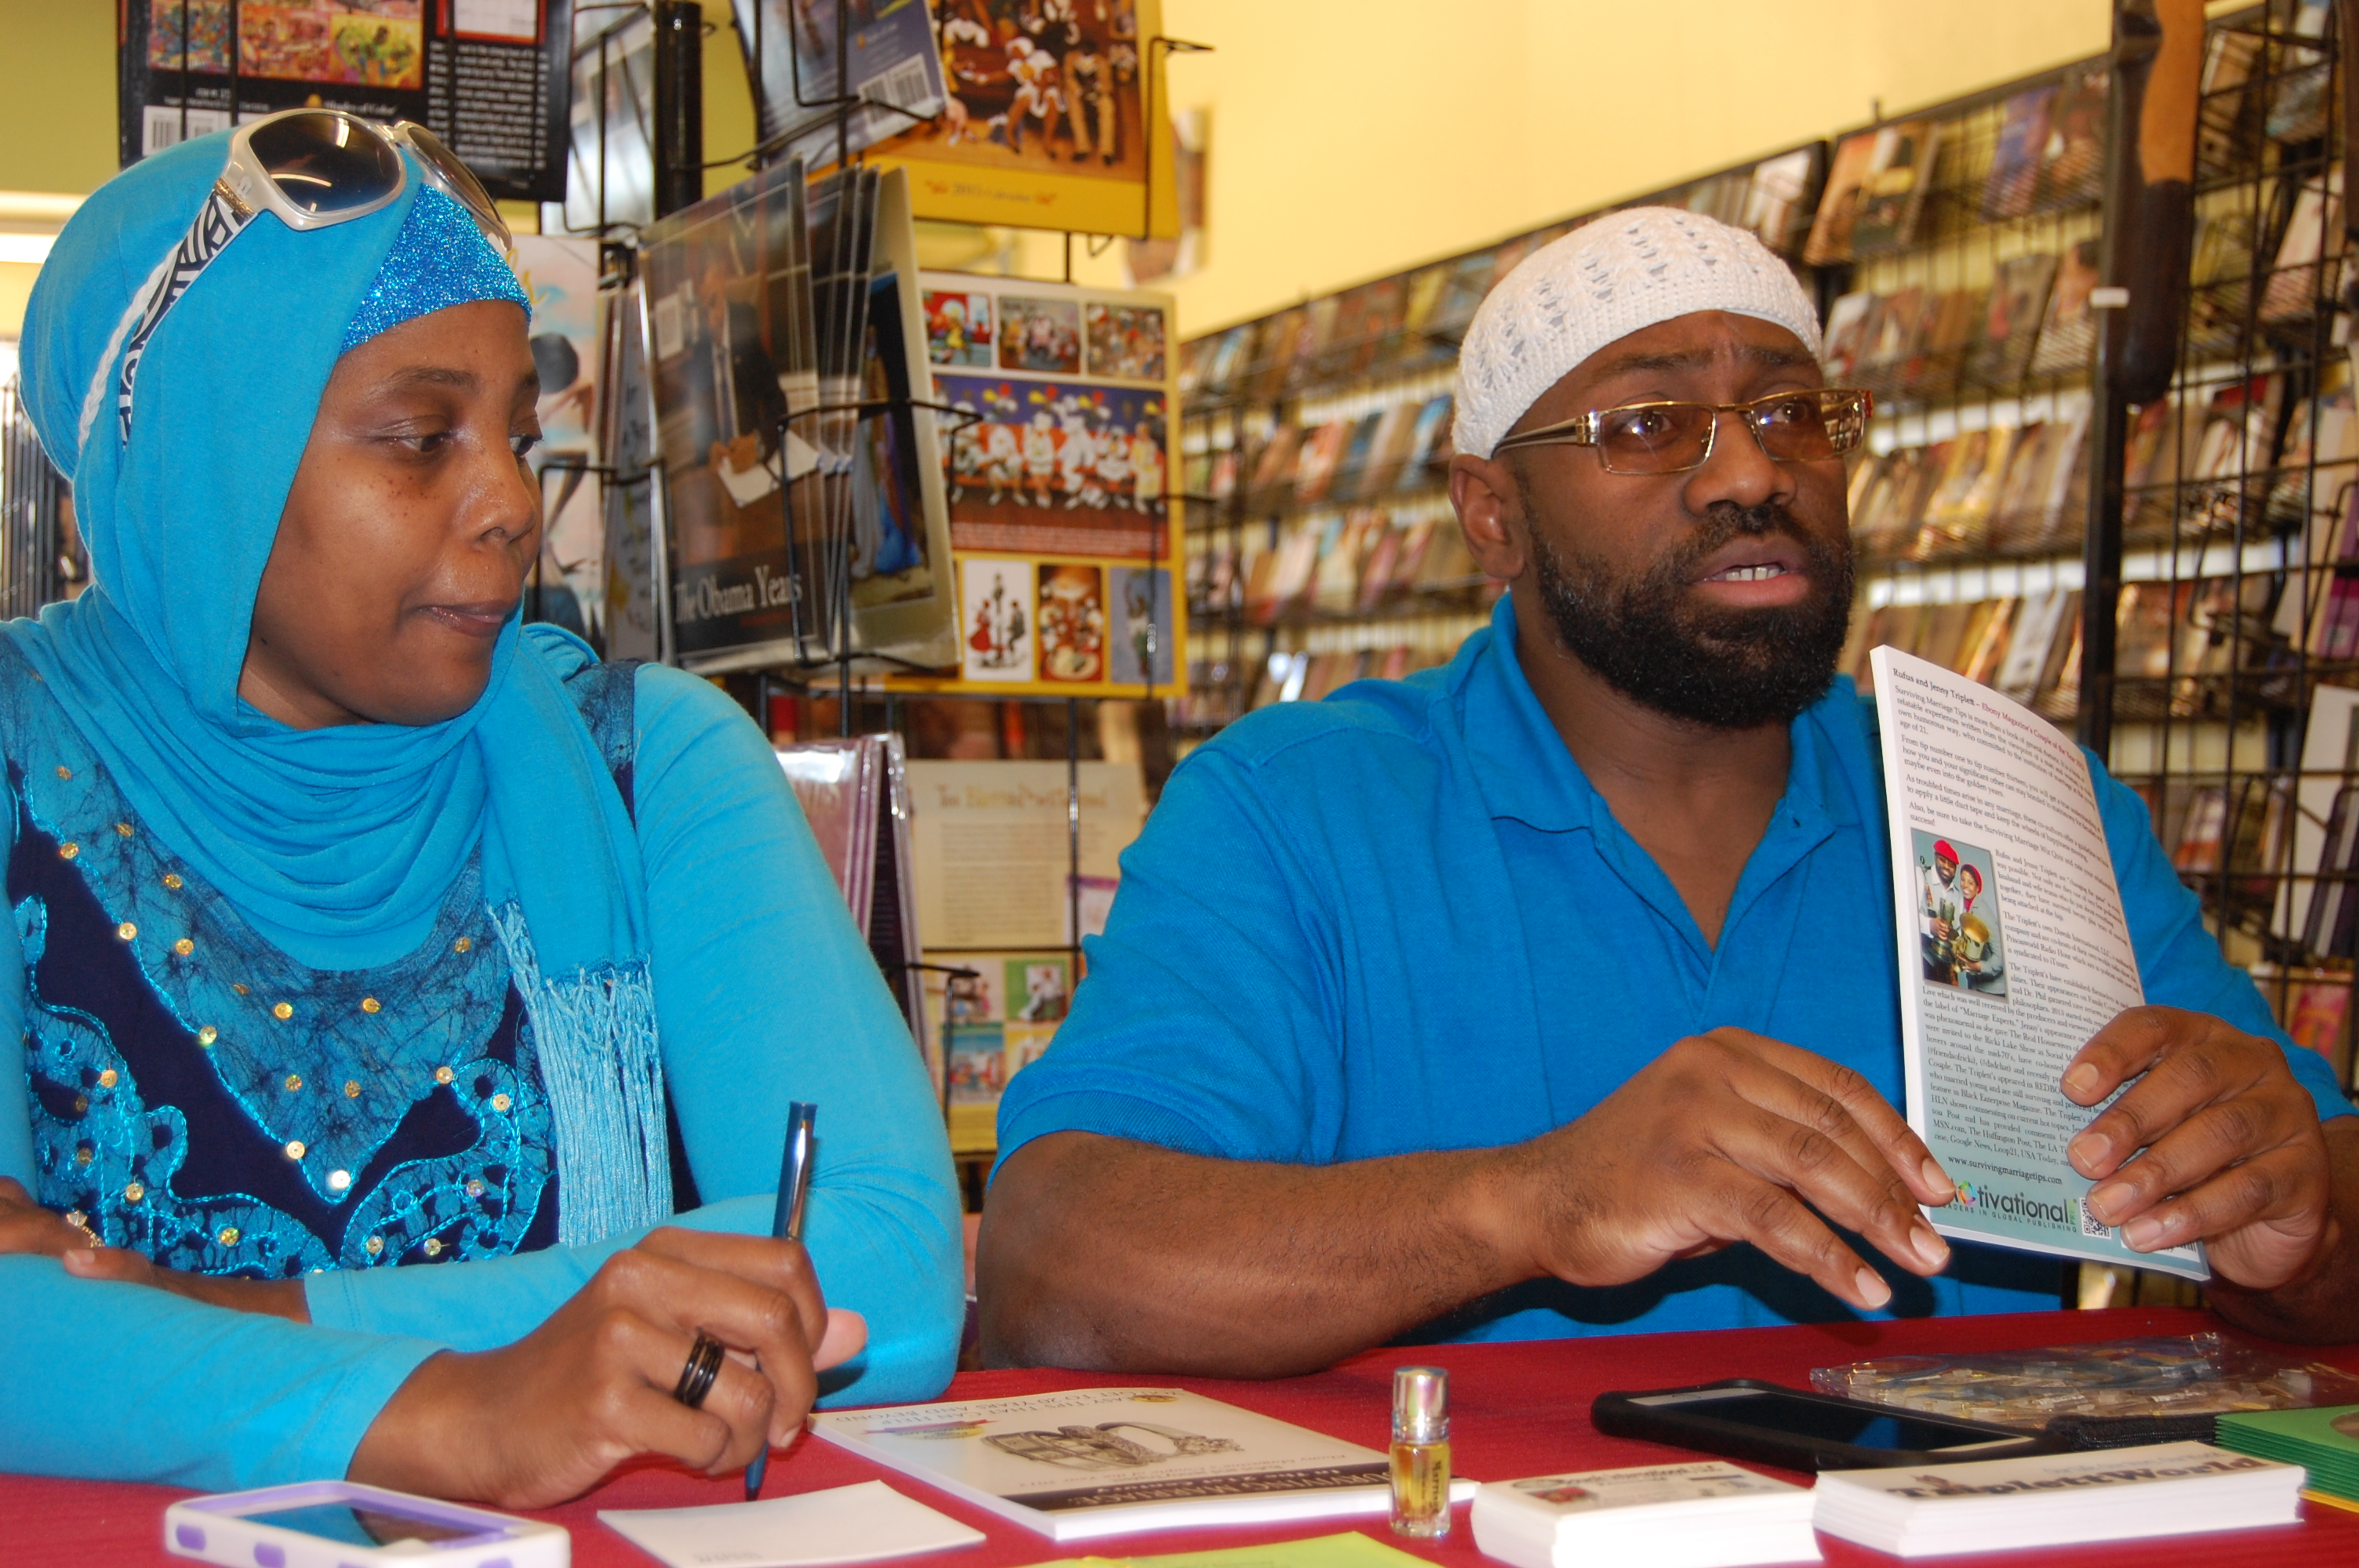 California Book Signing on Rufus and Jenny Triplett.com